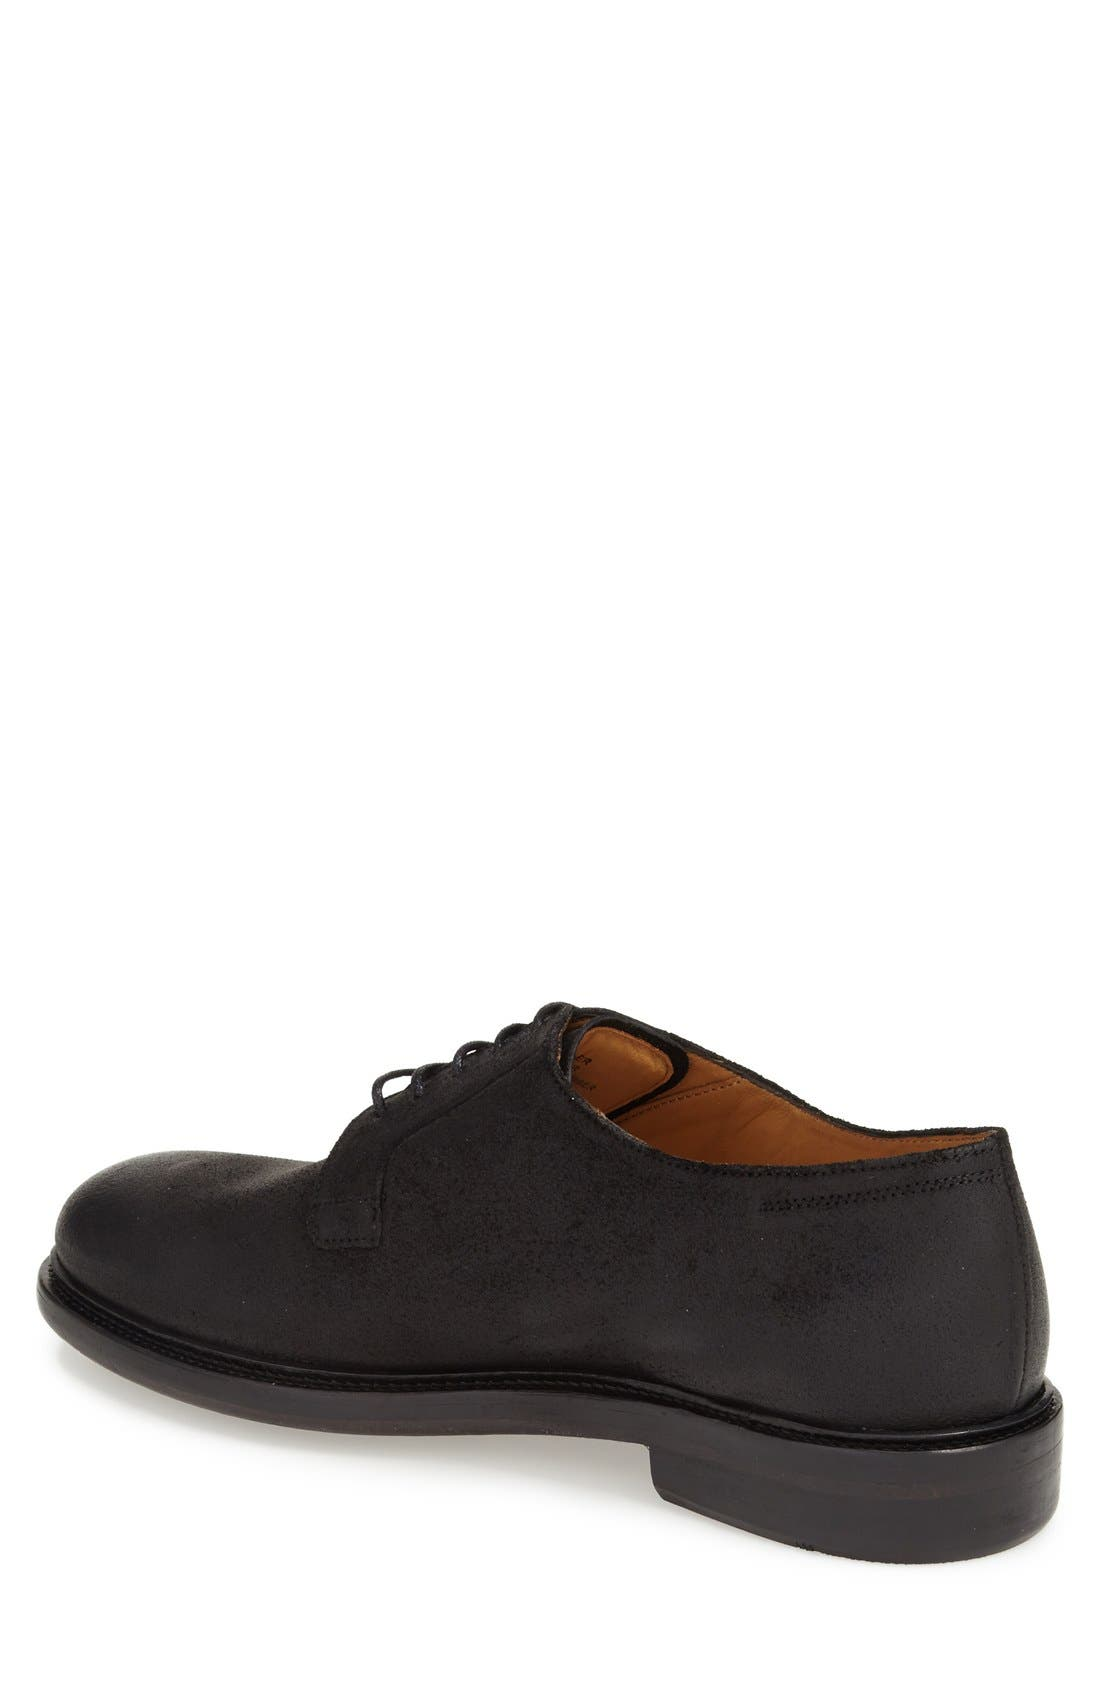 'Samtin' Plain Toe Blucher,                             Alternate thumbnail 3, color,